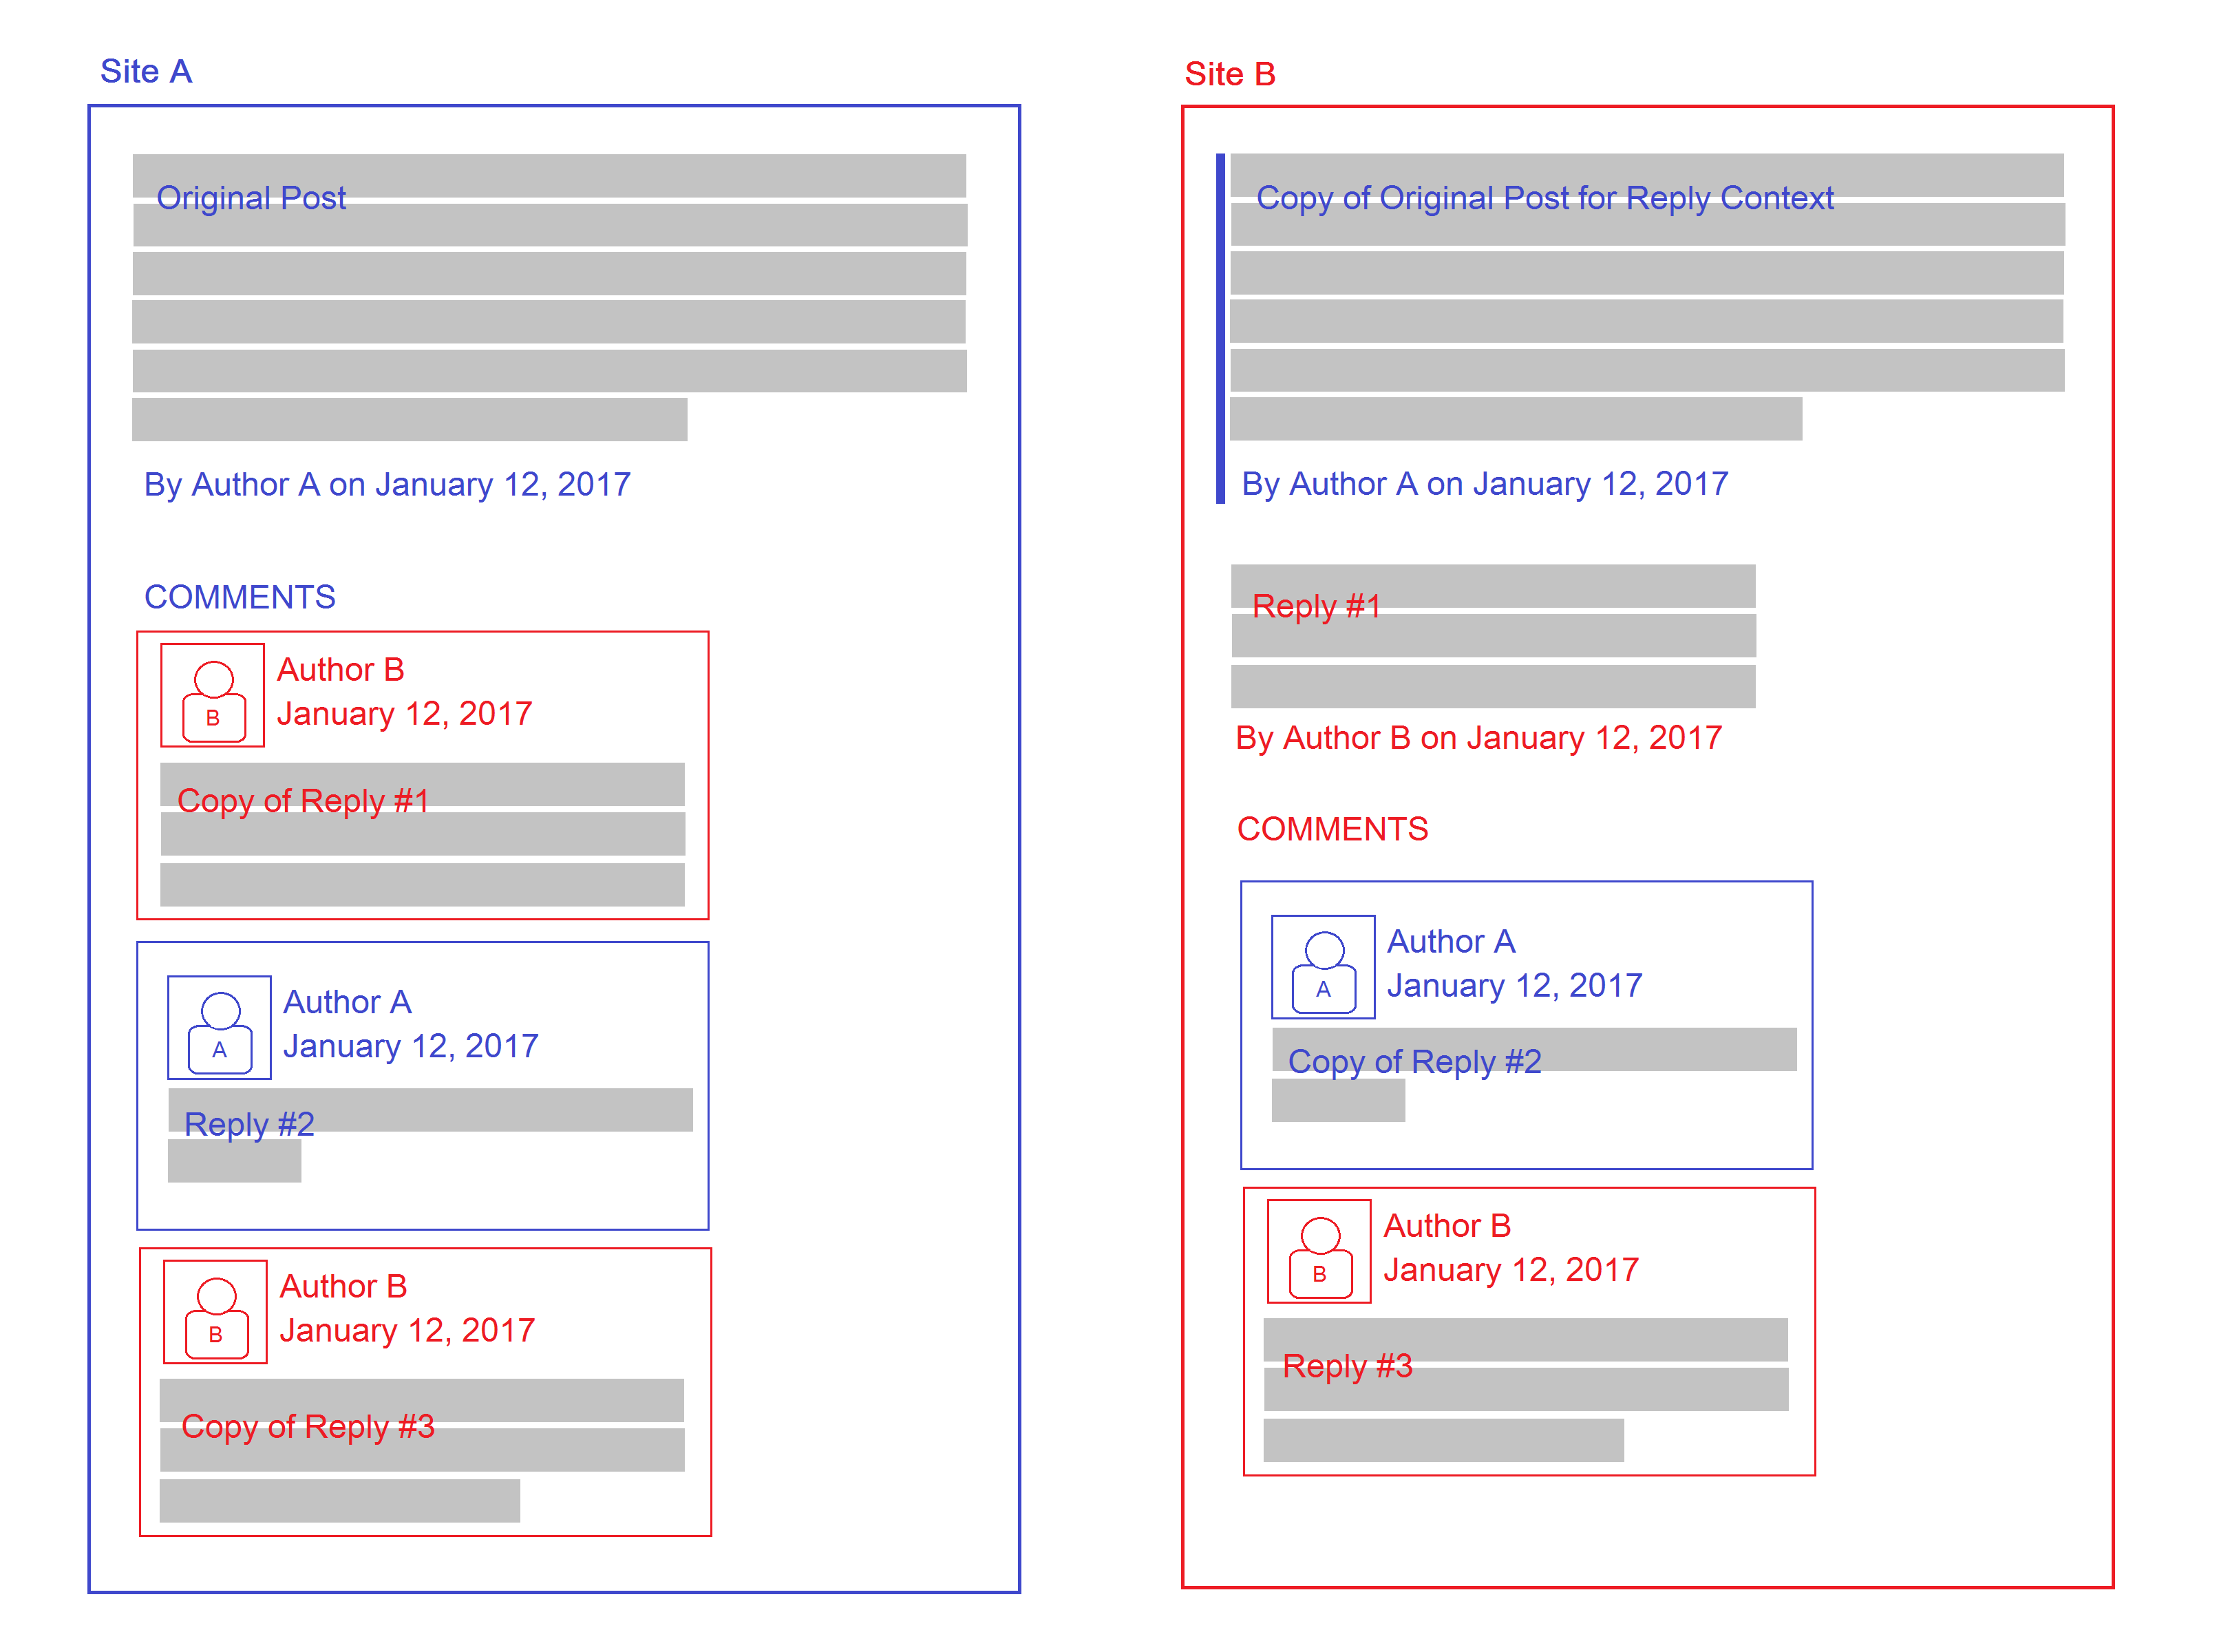 Diagram showing comments sections on two different websites, carrying on a single conversation